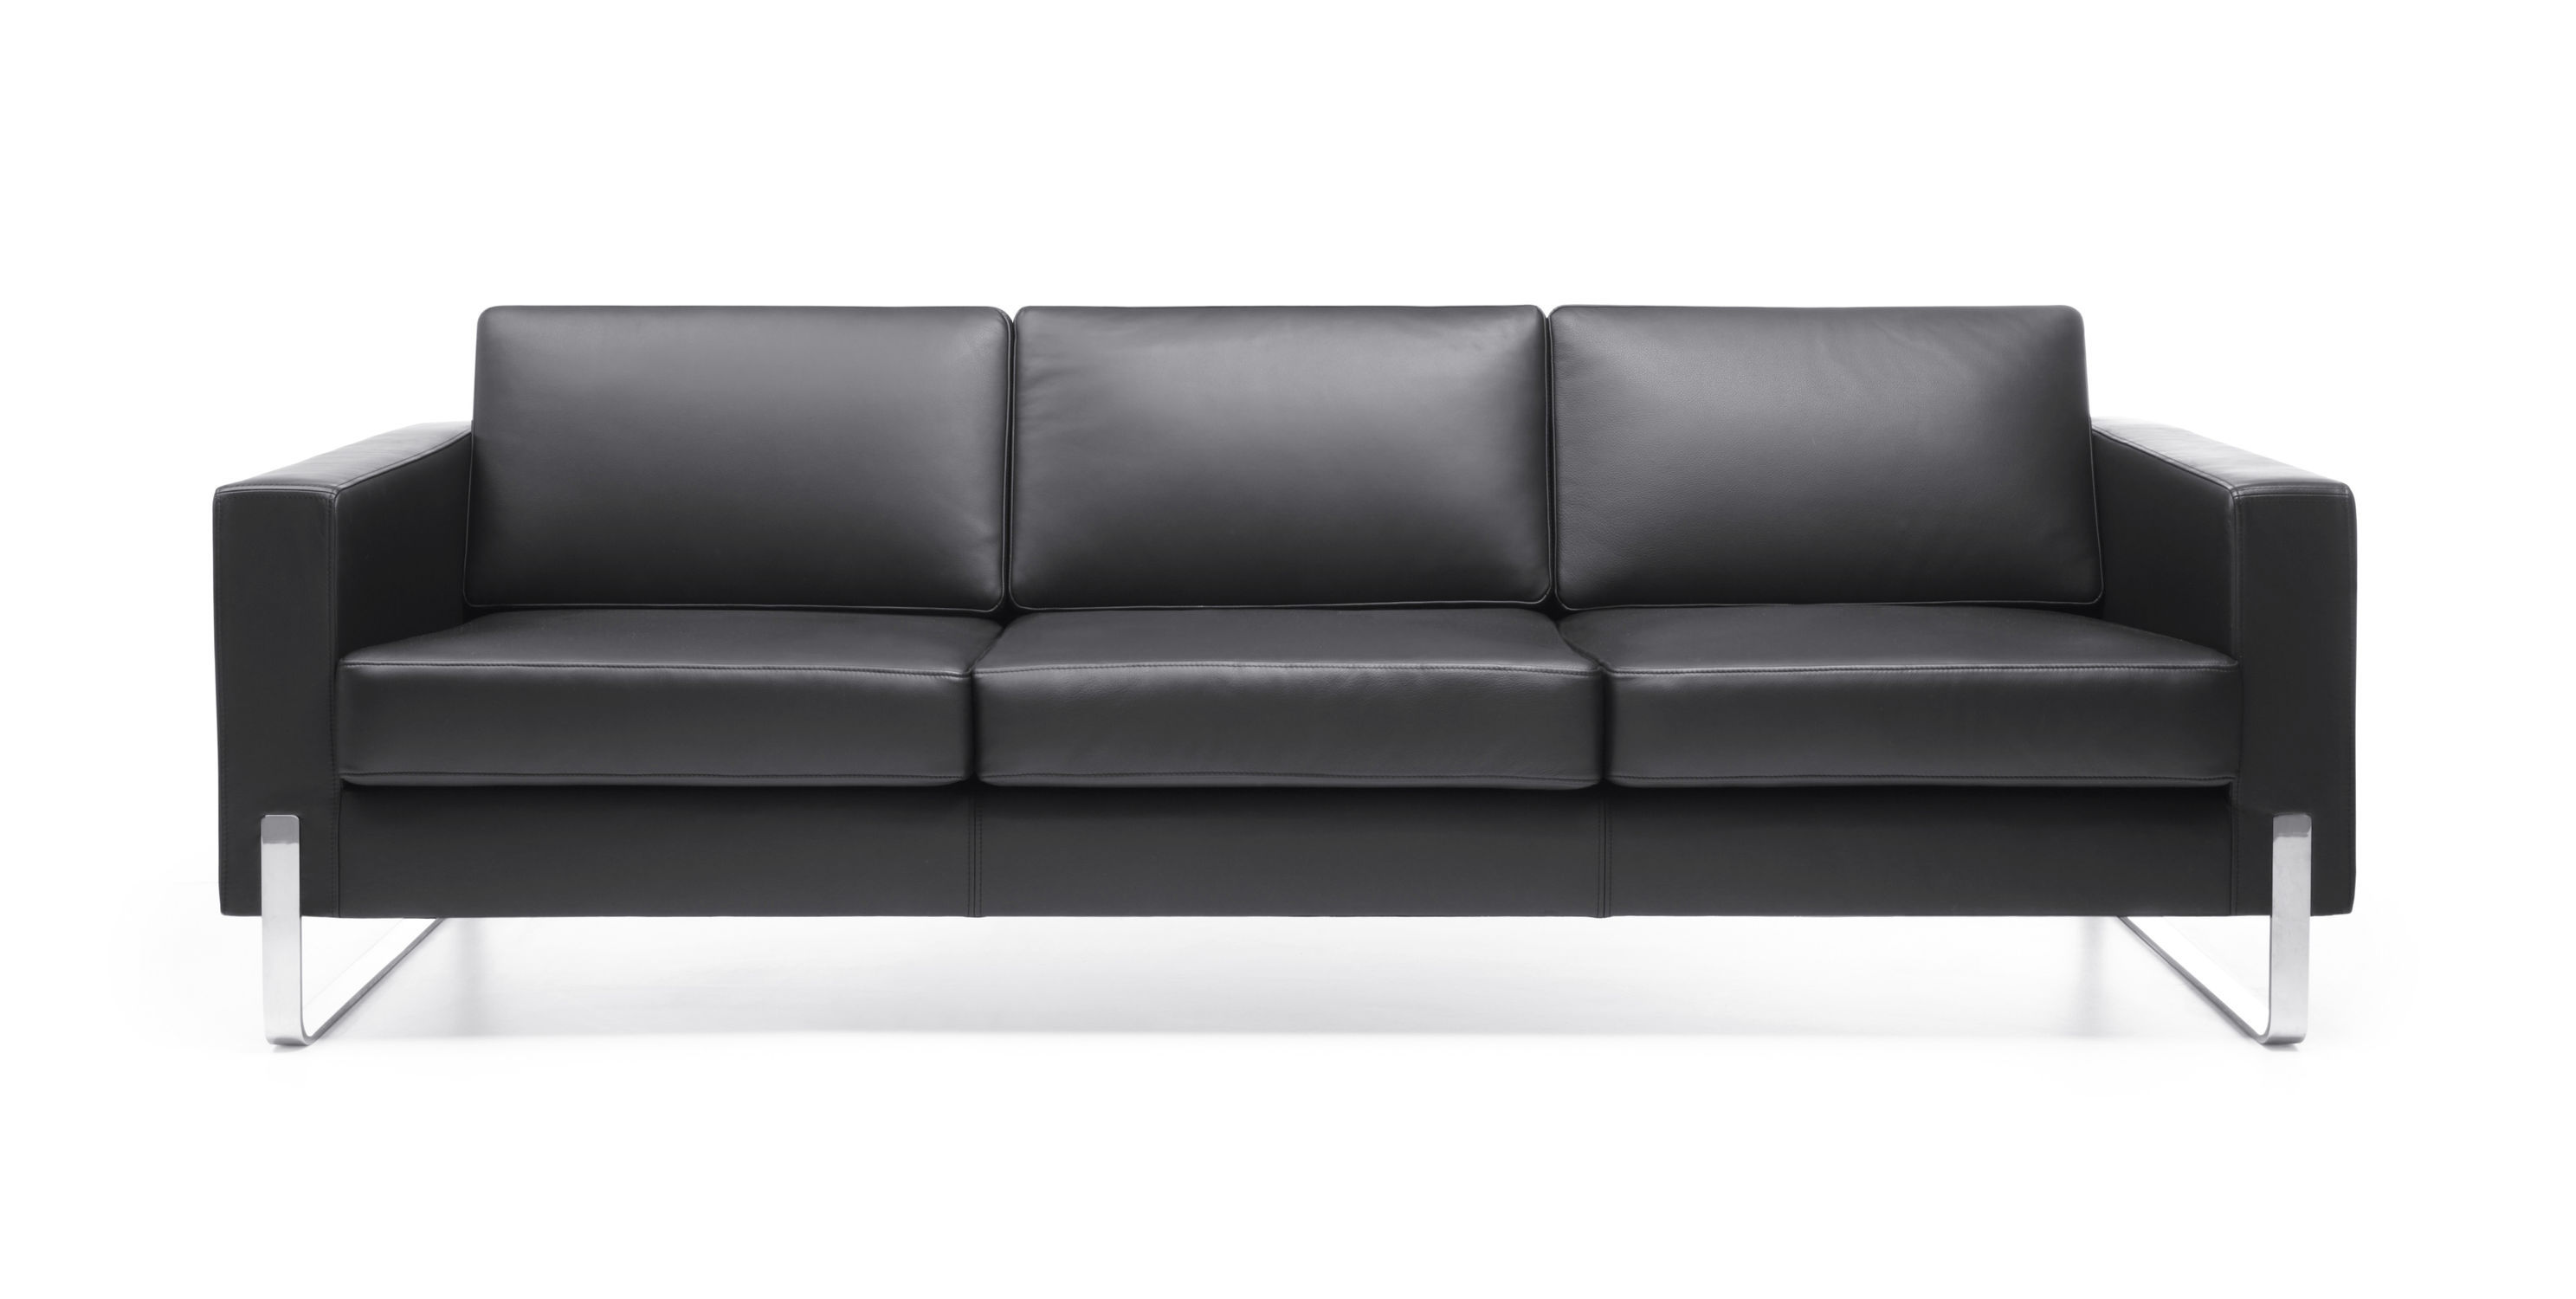 Contemporary sofa leather metal mercial MYTURN by Paul